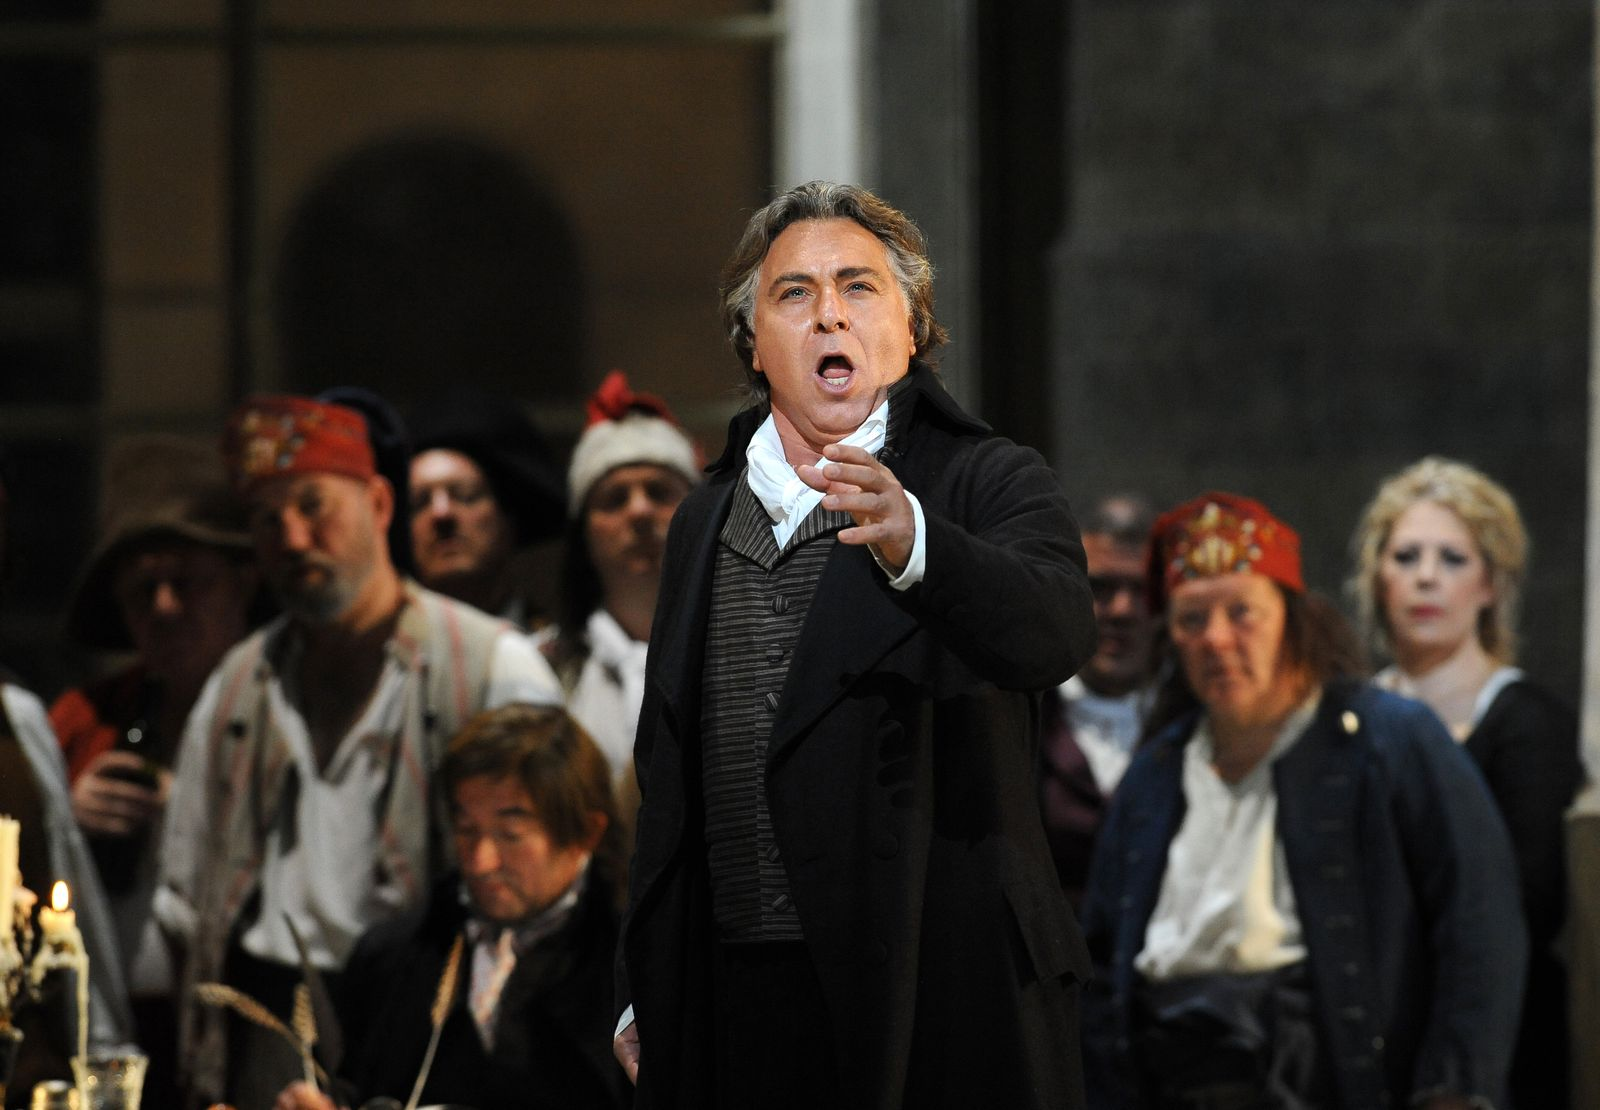 Le chanteur Roberto Alagna | Photo : Getty Images